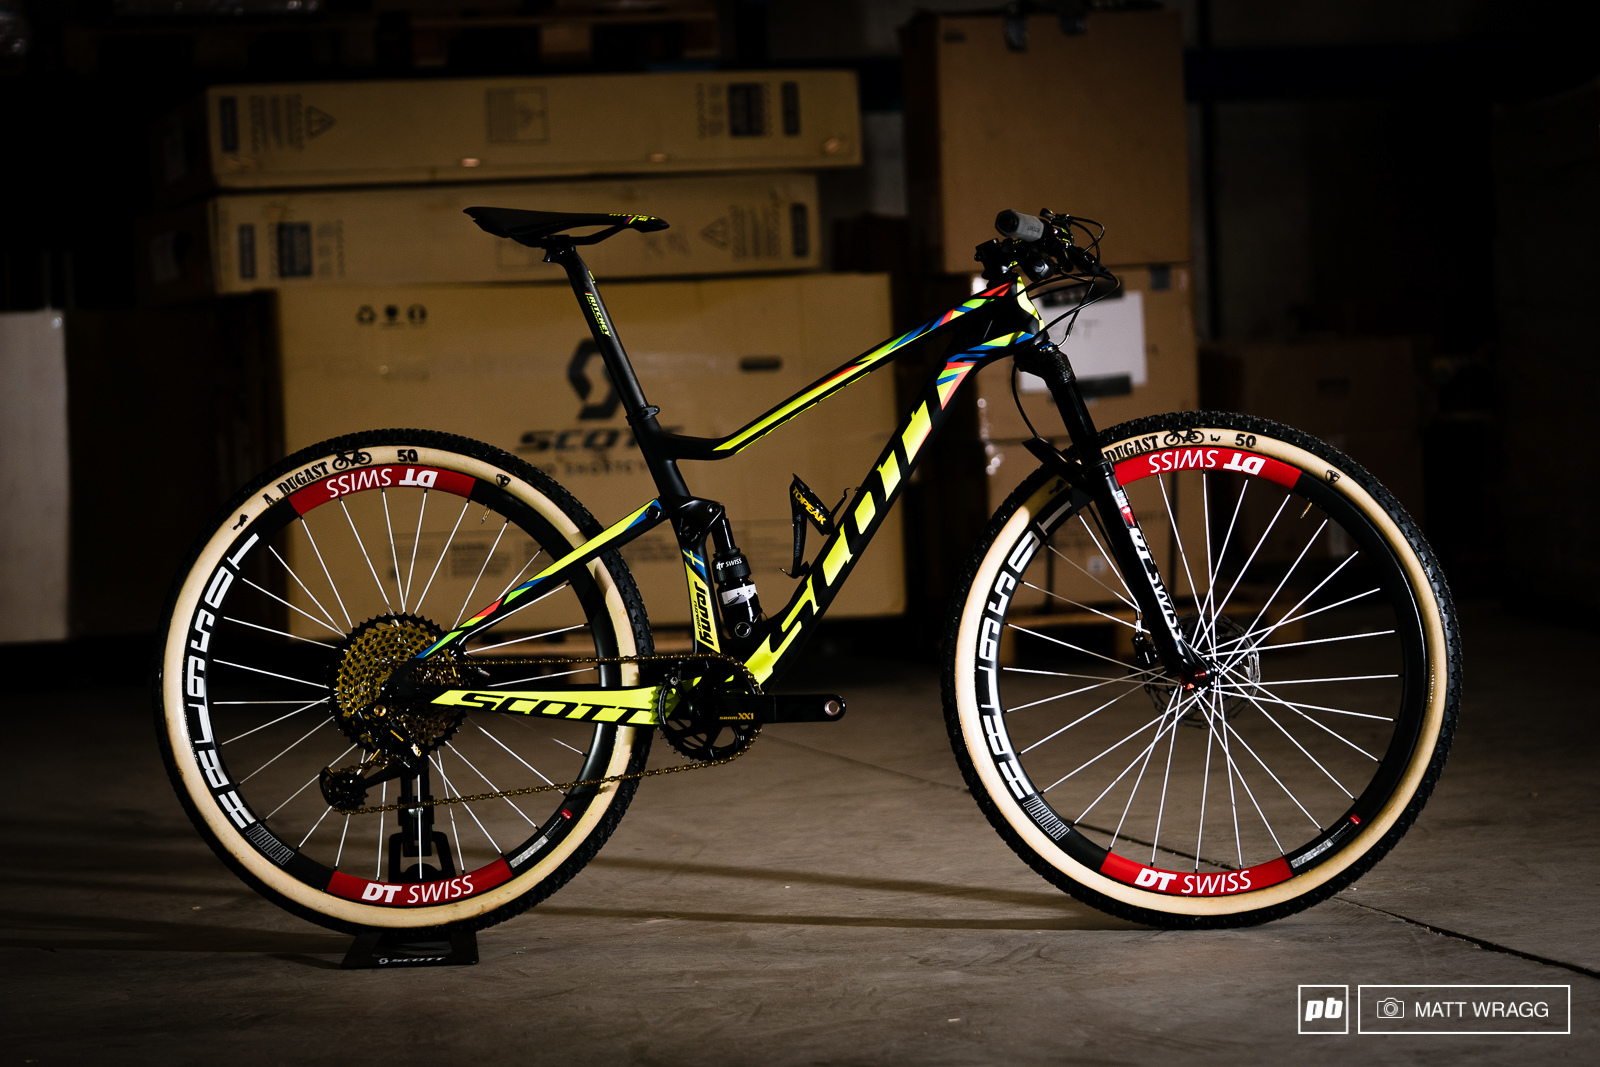 f5e19959361 The Olympic Bike: Developing the Scott Spark - Pinkbike